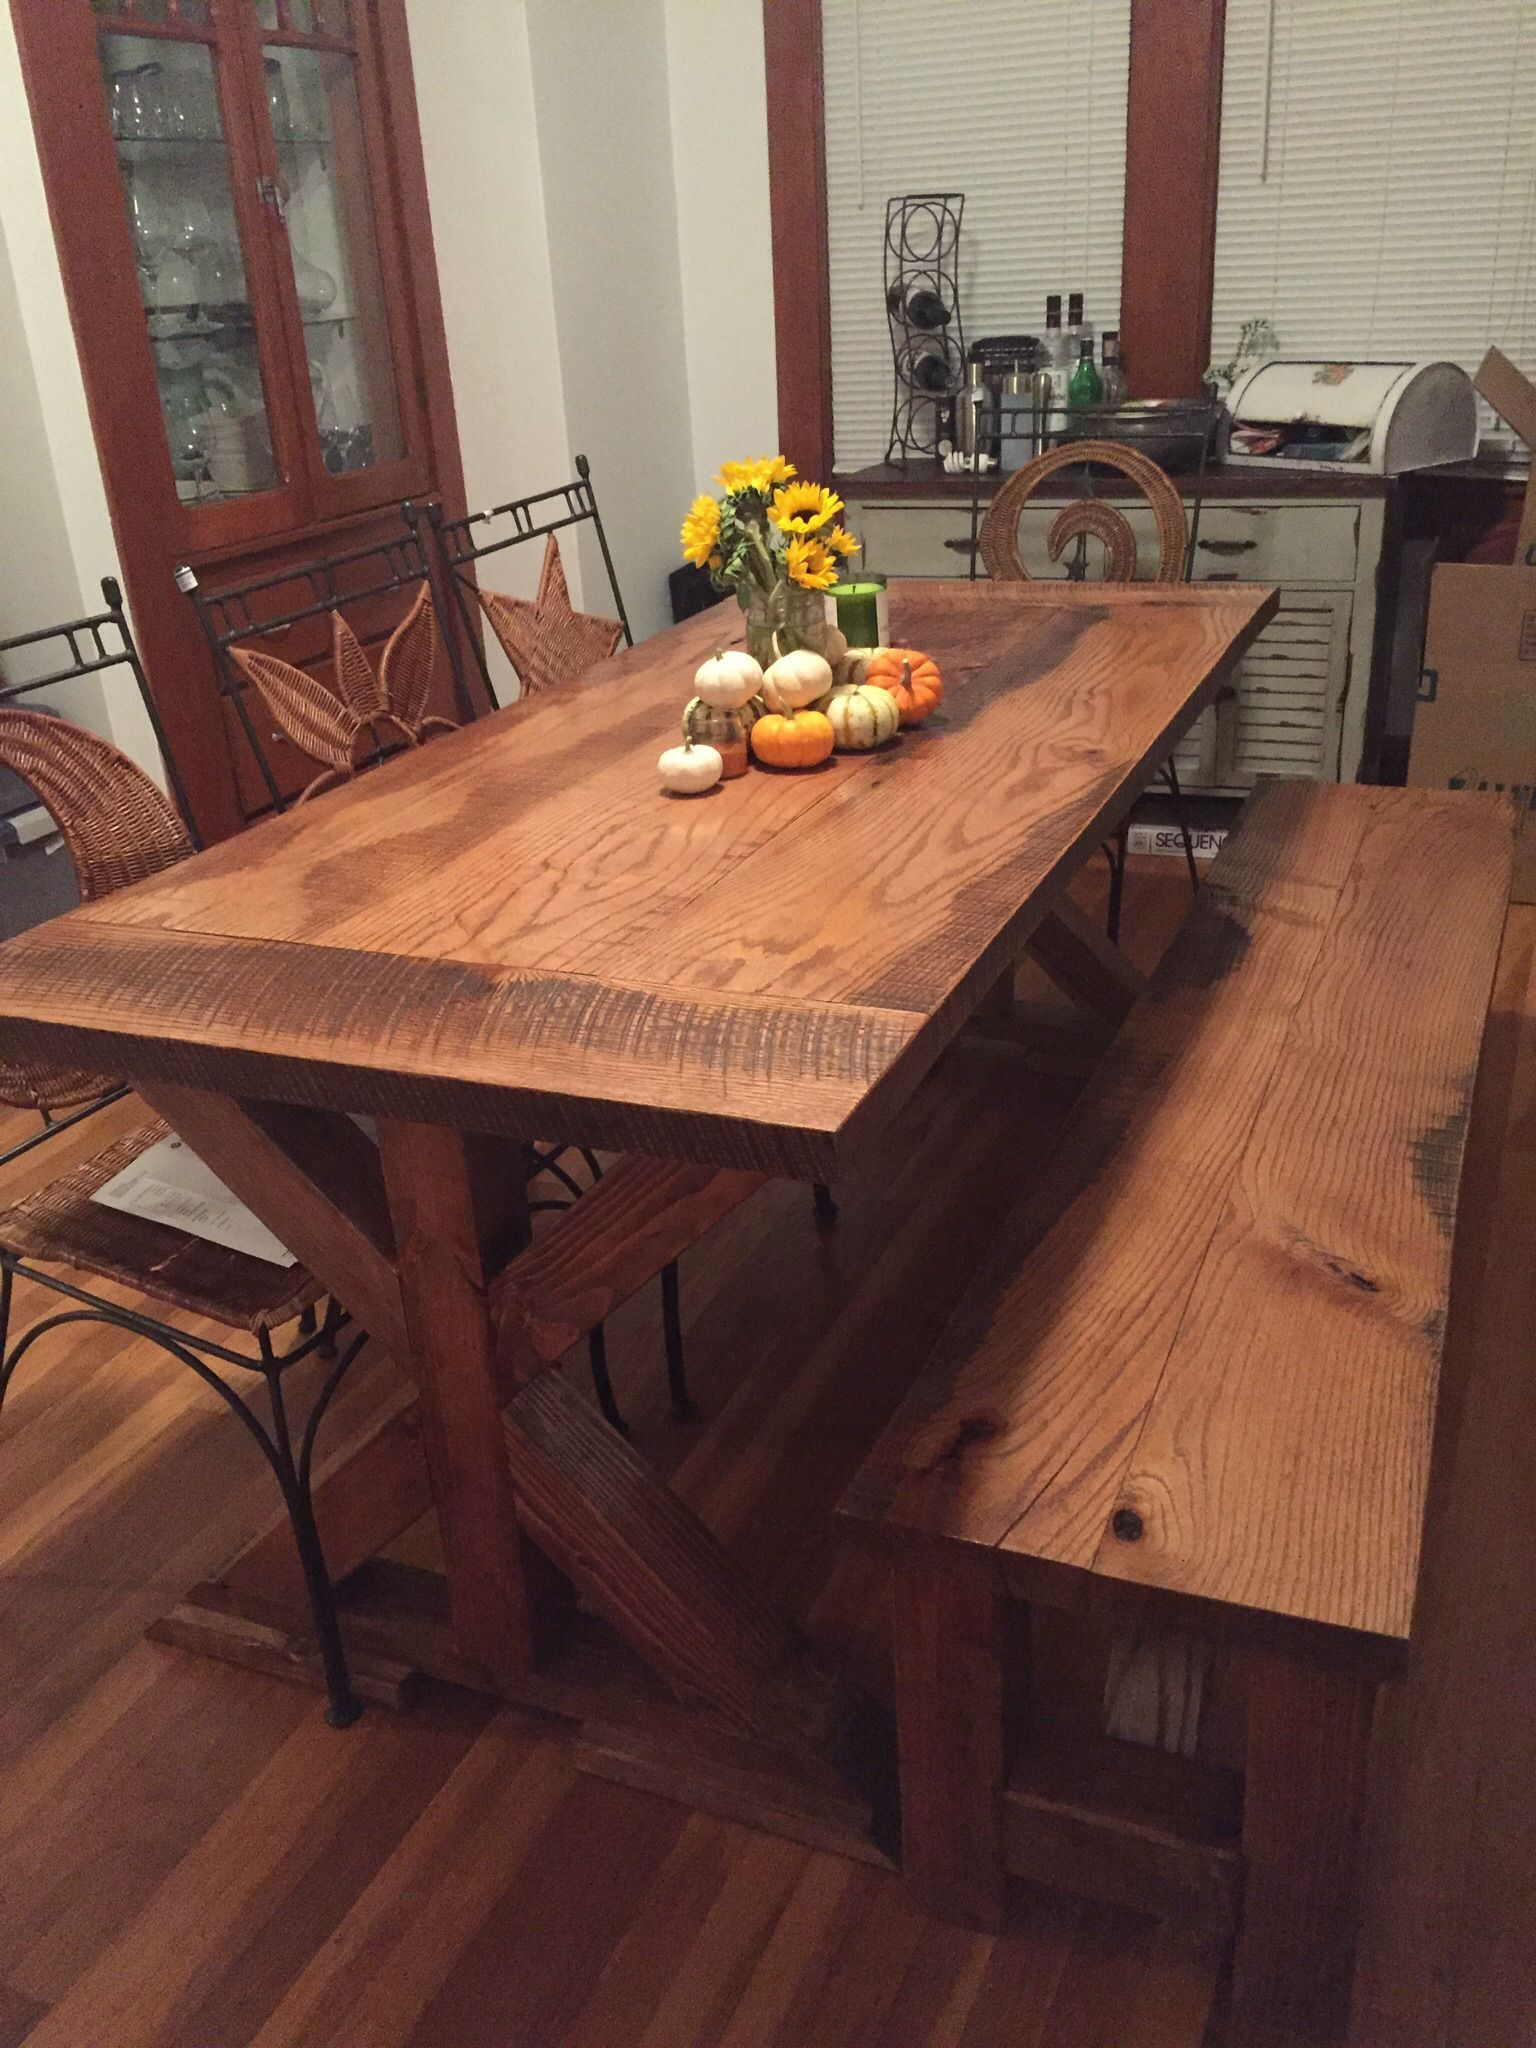 Handmade Reclaimed Oak Farm Table With X Base by Virginia Build